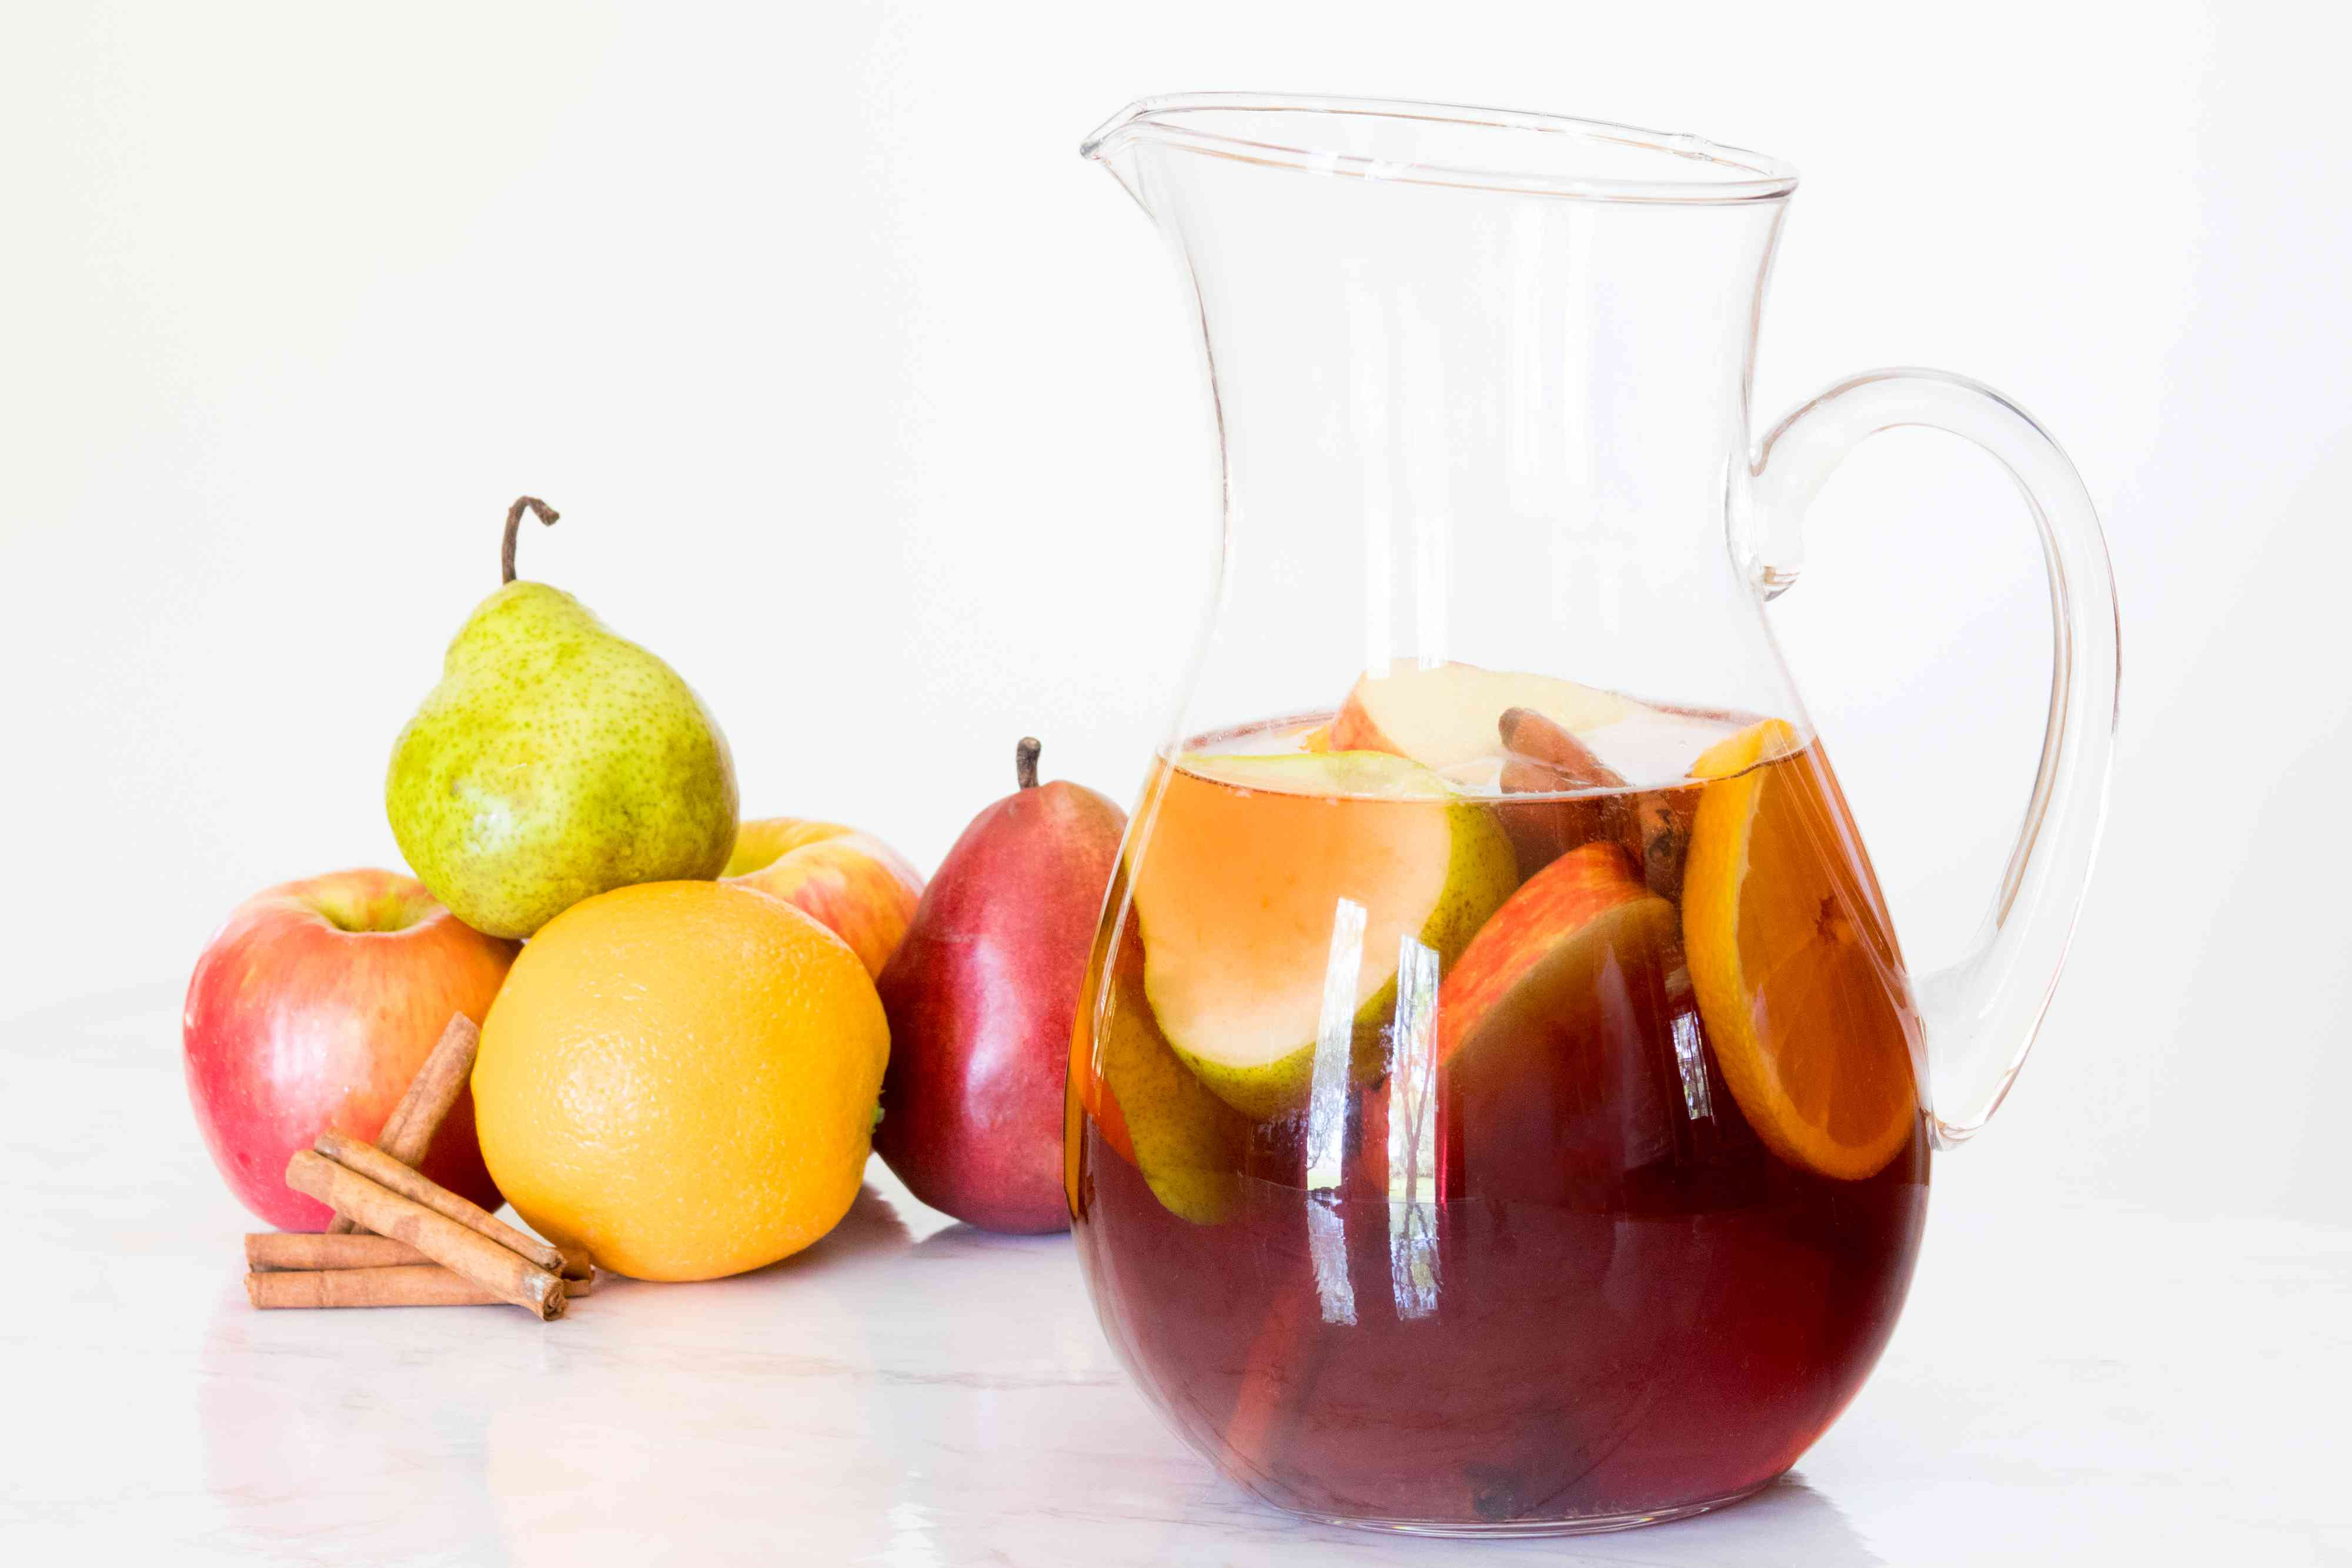 Apples, Pears, Oranges, and Cinnamon for a Fall Sangria